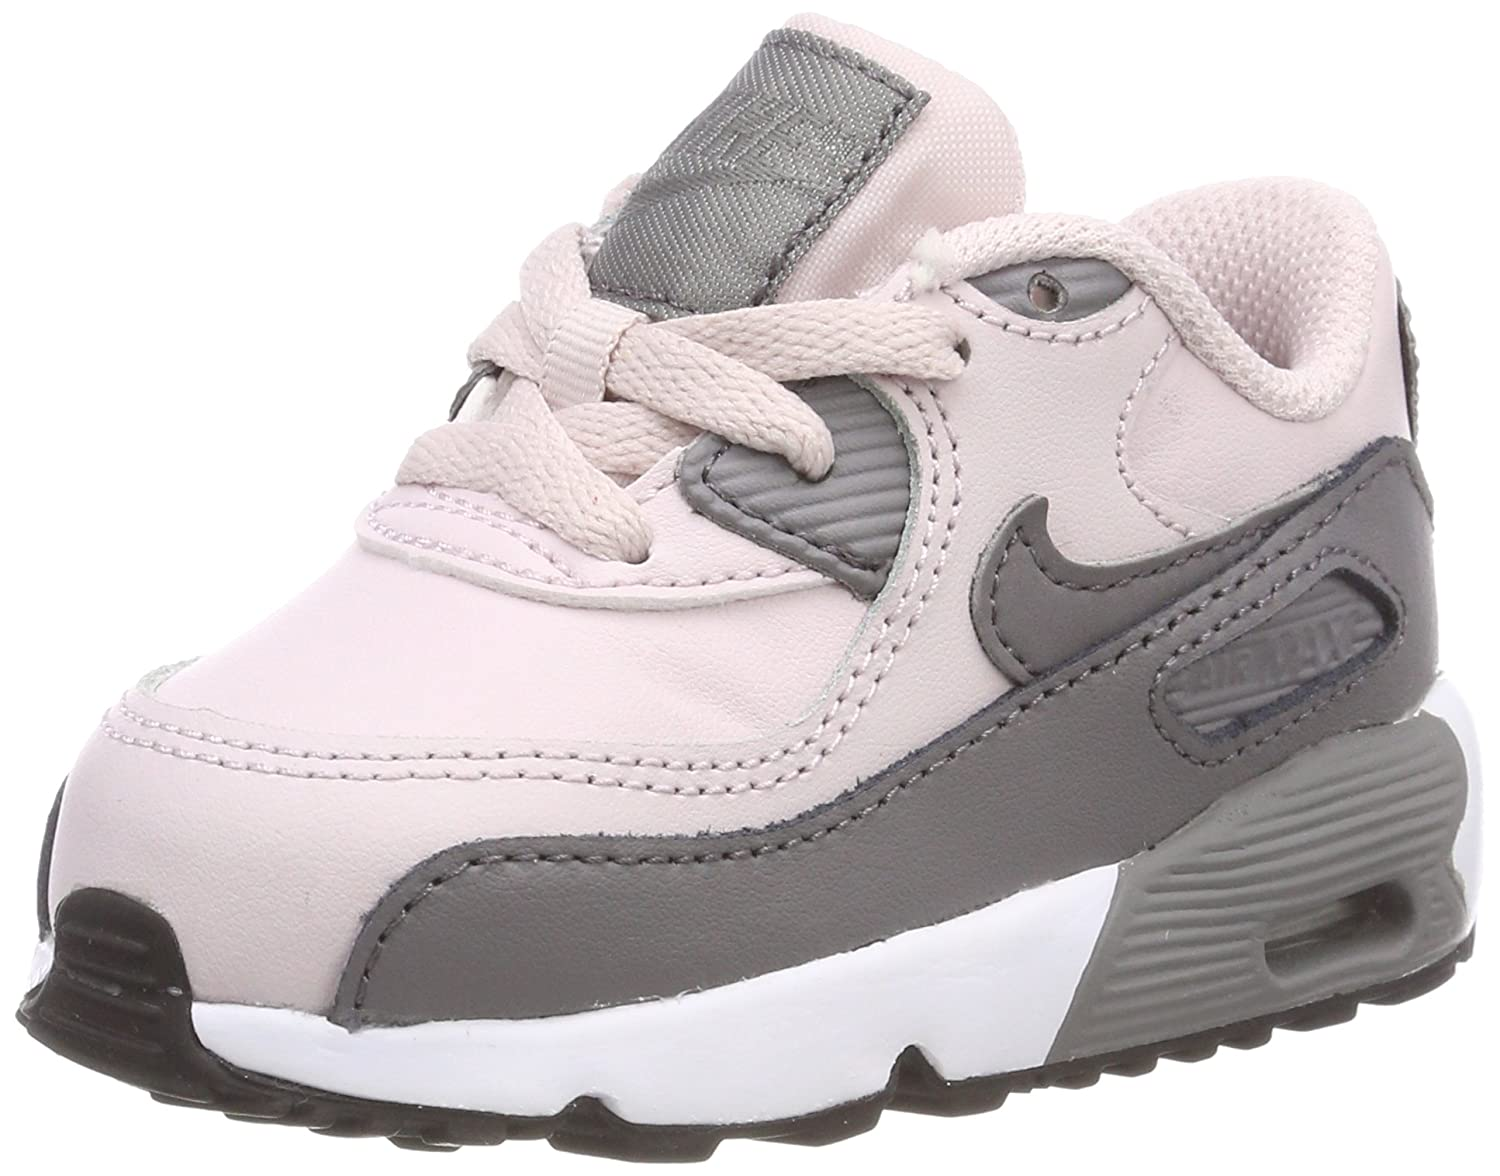 buy popular 0e20d 0cc9a Nike Air Max 90 LTR (TD), Chaussures de Gymnastique Fille